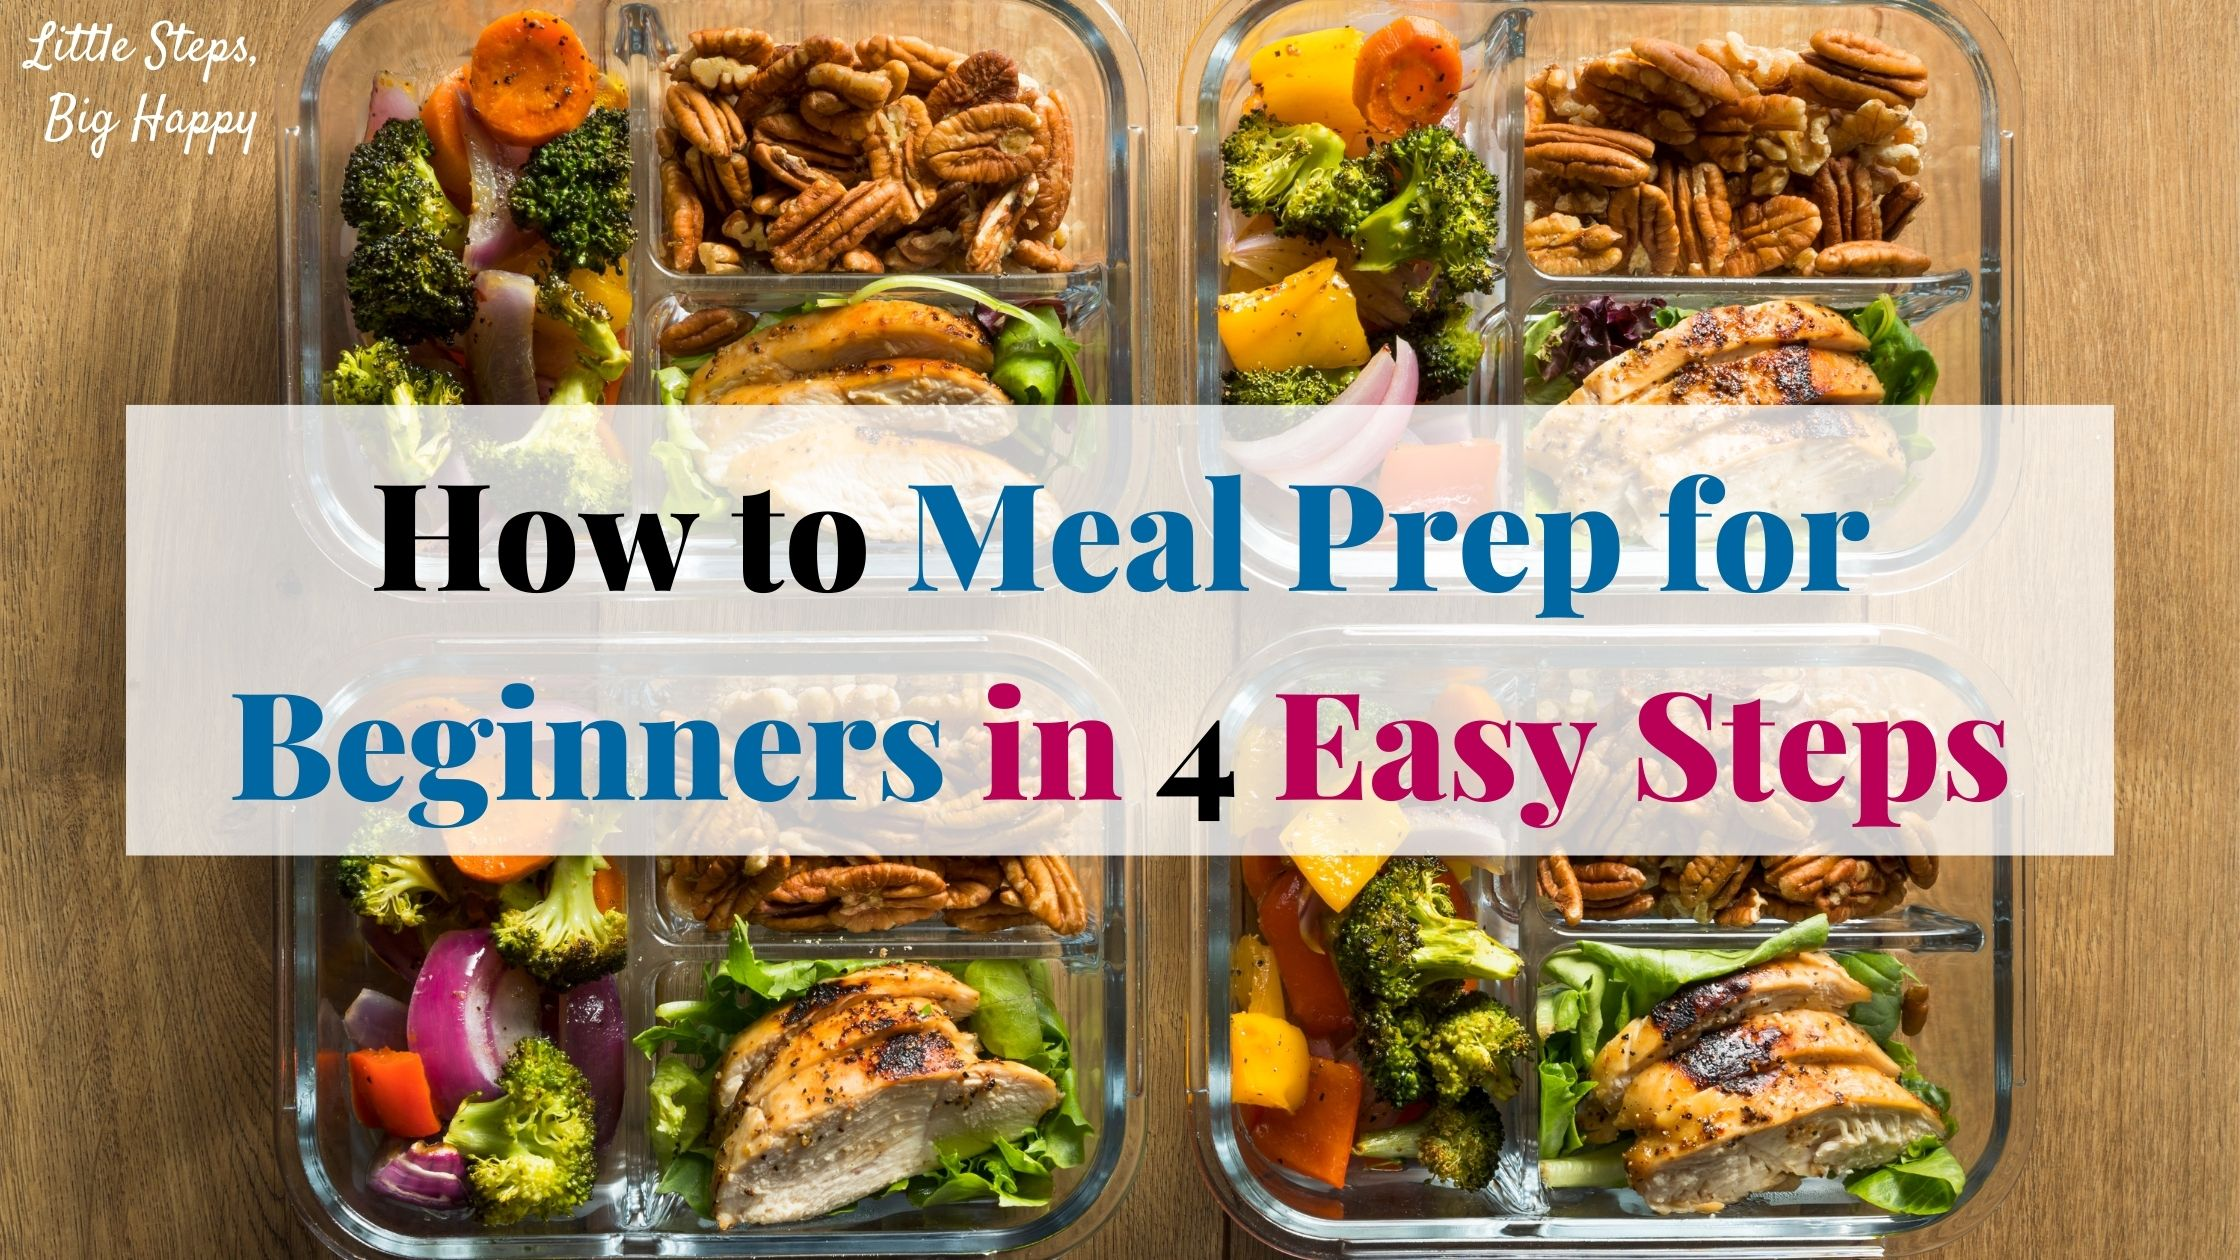 How to Meal Prep for beginners in 4 Easy Steps